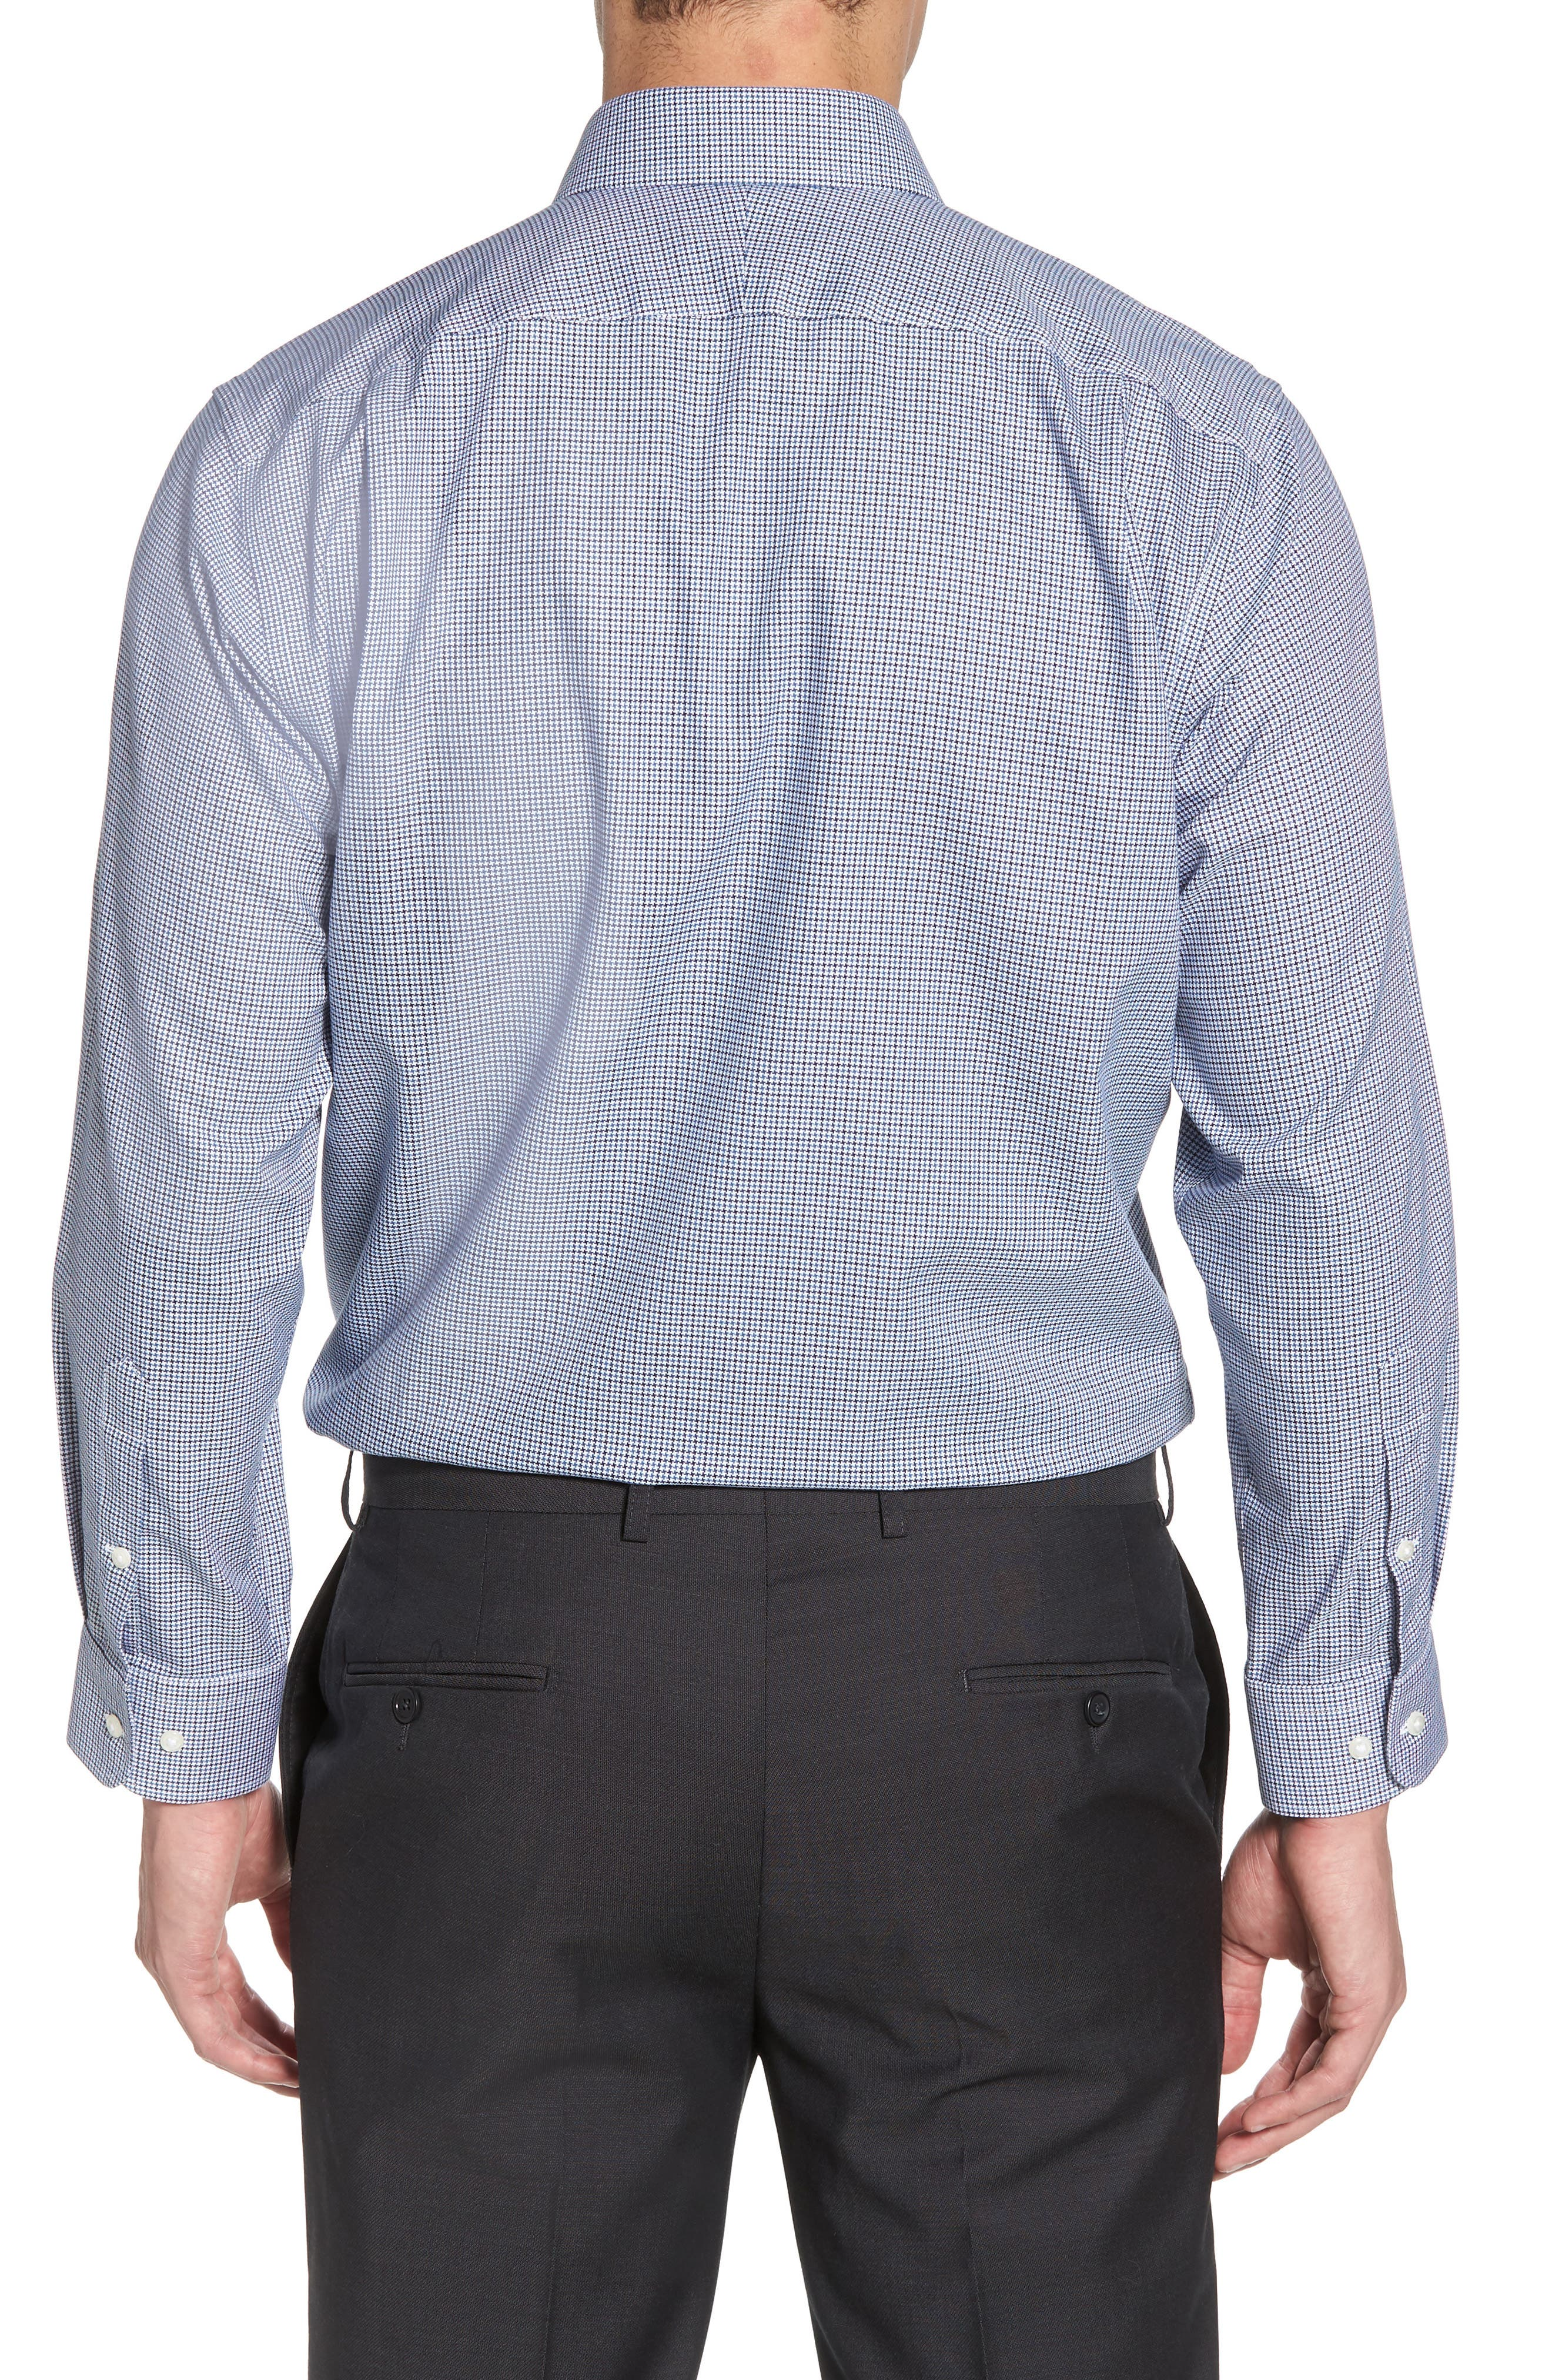 Smartcare<sup>™</sup> Traditional Fit Houndstooth Dress Shirt,                             Alternate thumbnail 3, color,                             410